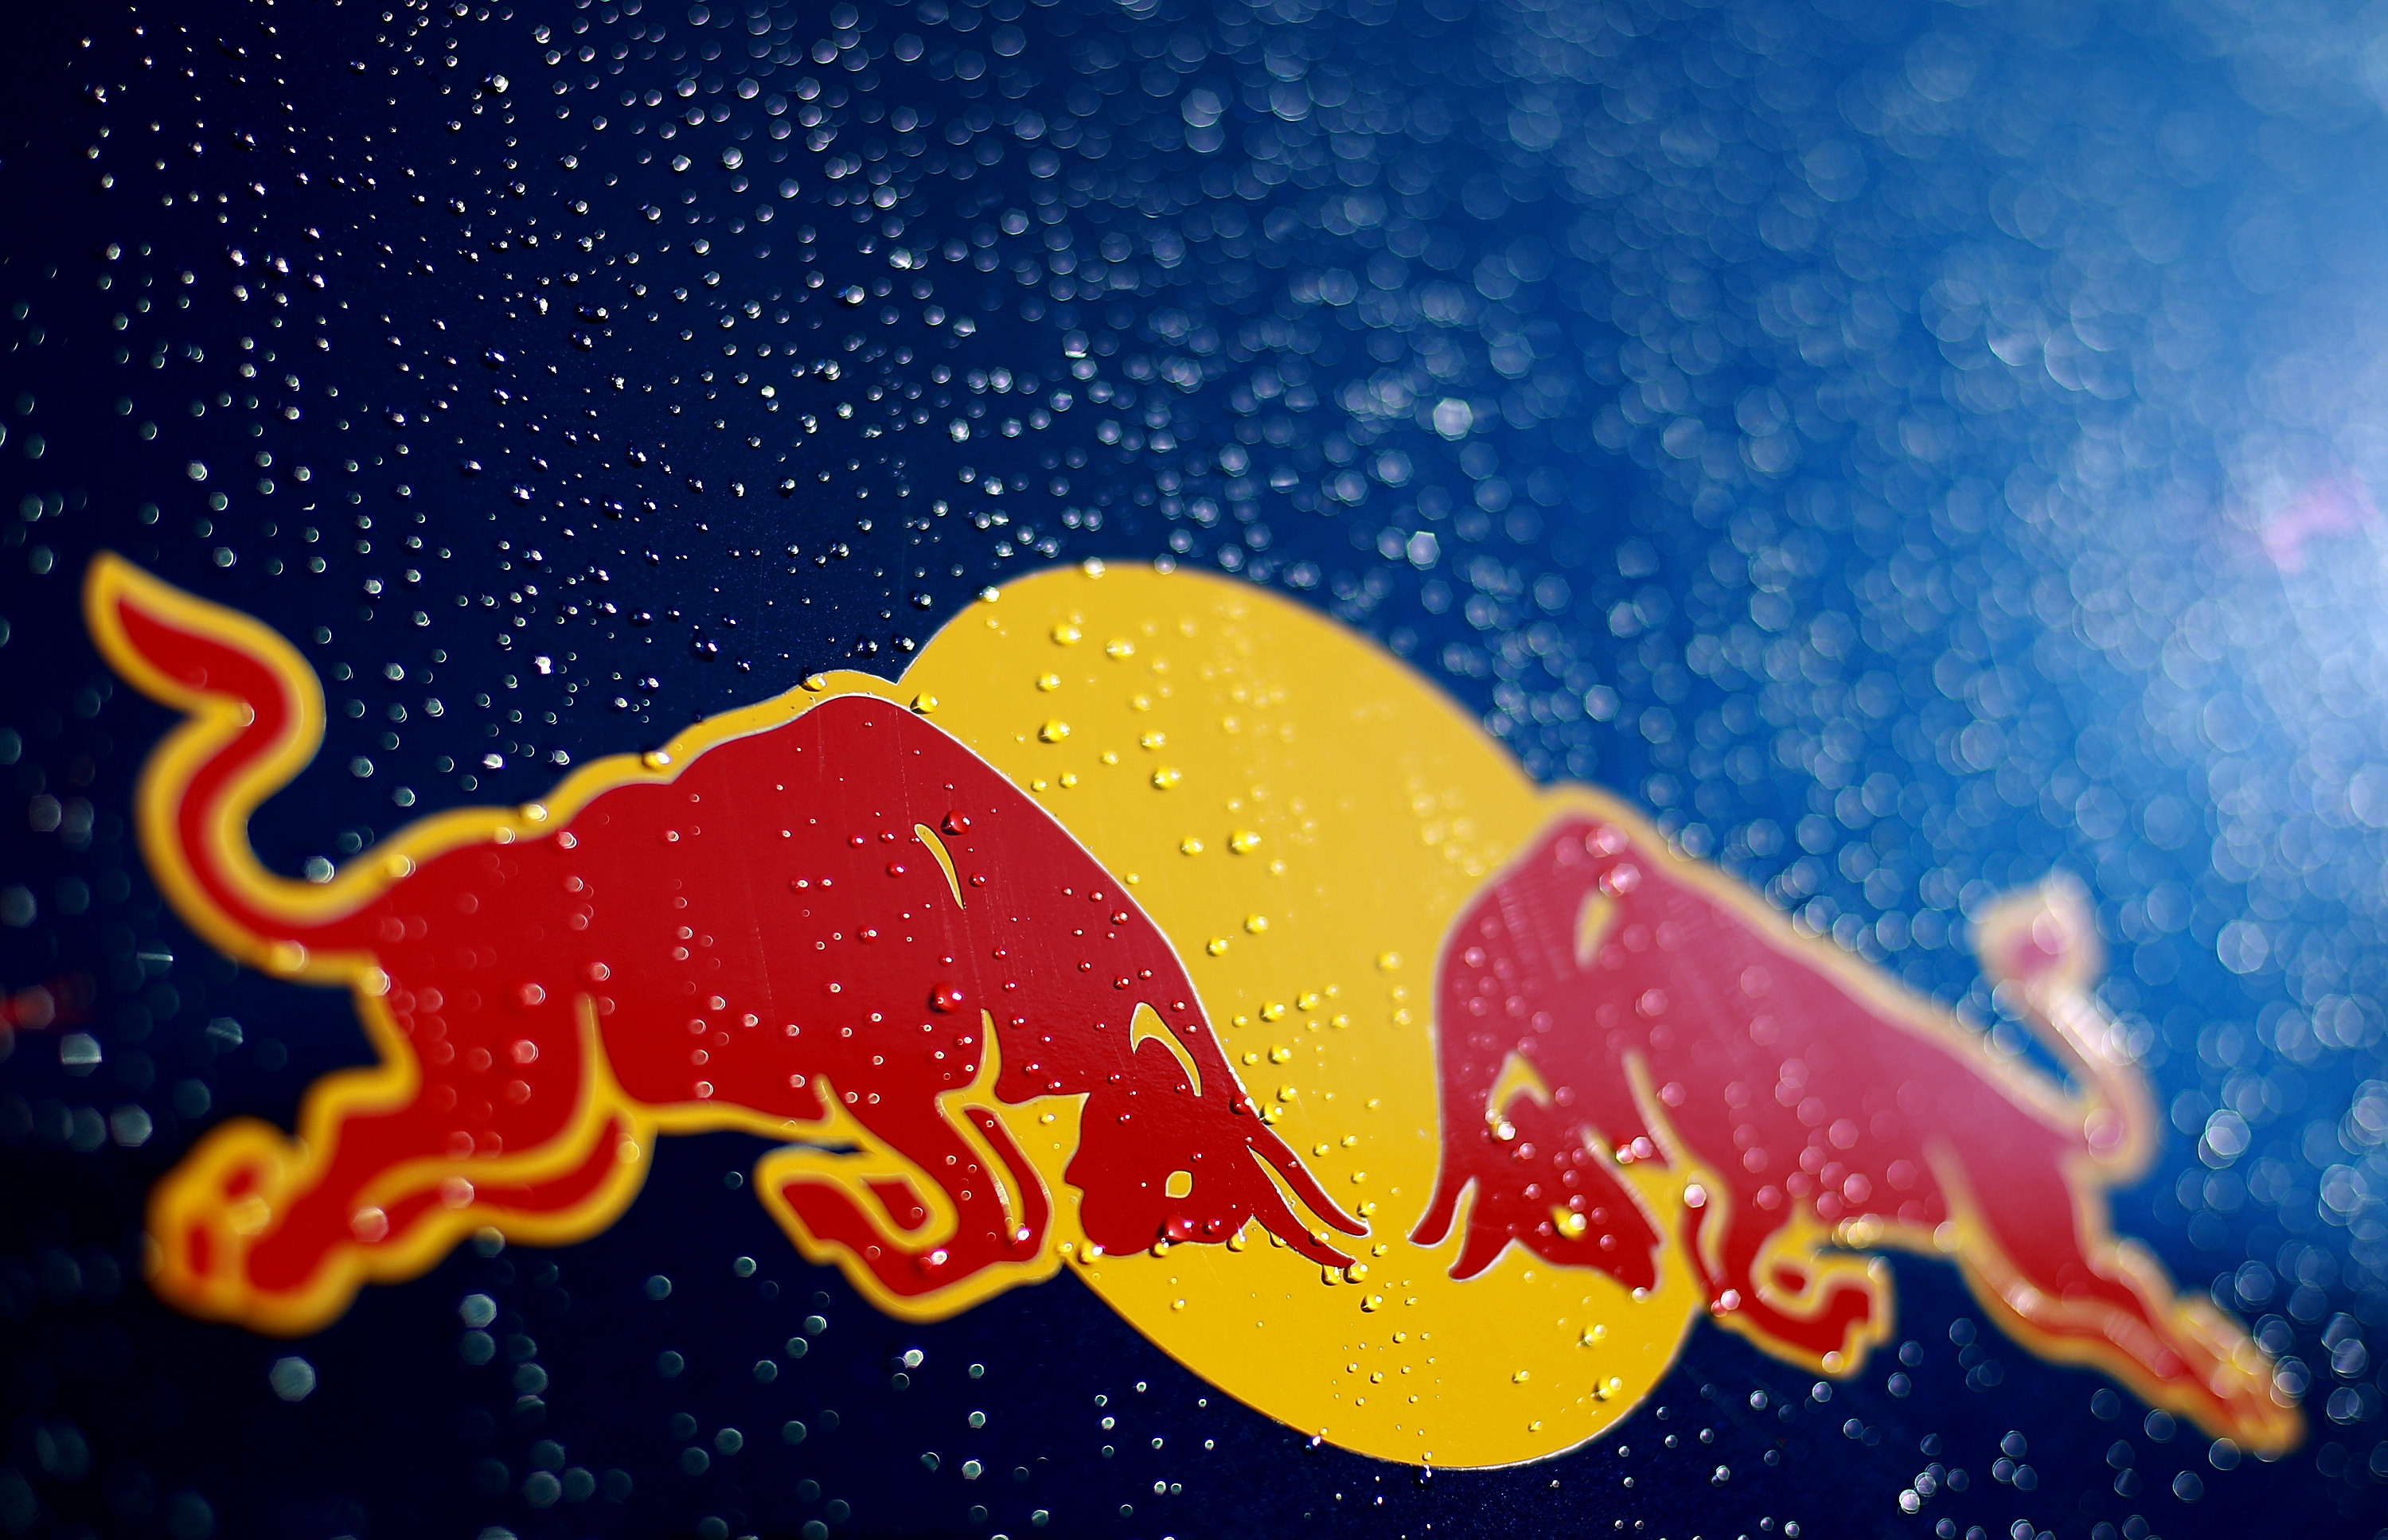 3000x1935 wallpaper.wiki-HD-Red-Bull-Logo-Wallpapers-PIC-